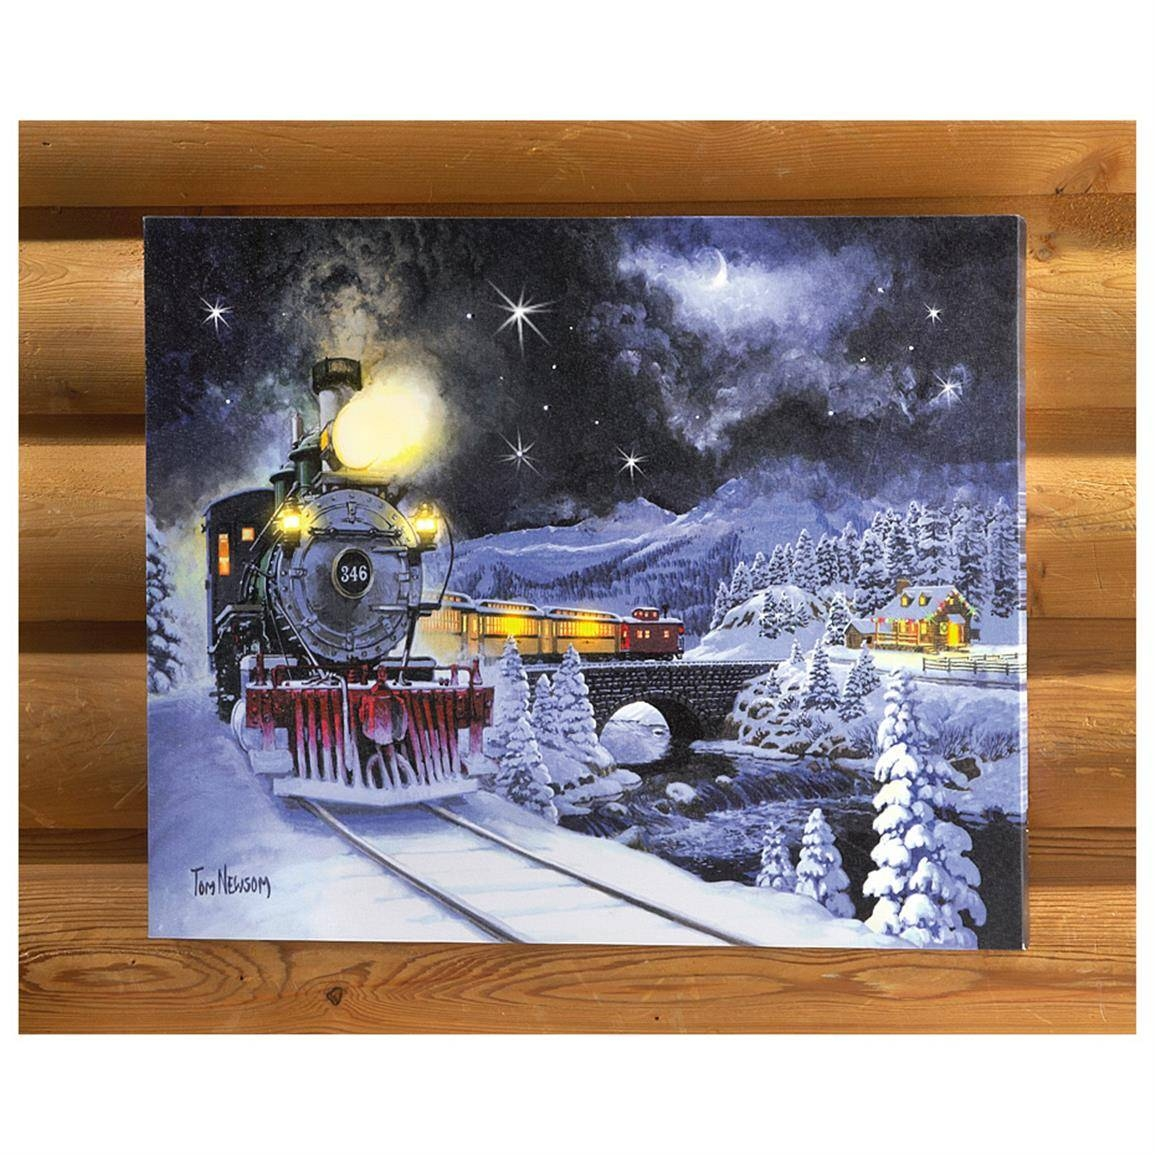 Canvas Wrapped Christmas Wall Art – 616310, Seasonal Gifts At Pertaining To Best And Newest Seasonal Wall Art (View 11 of 20)